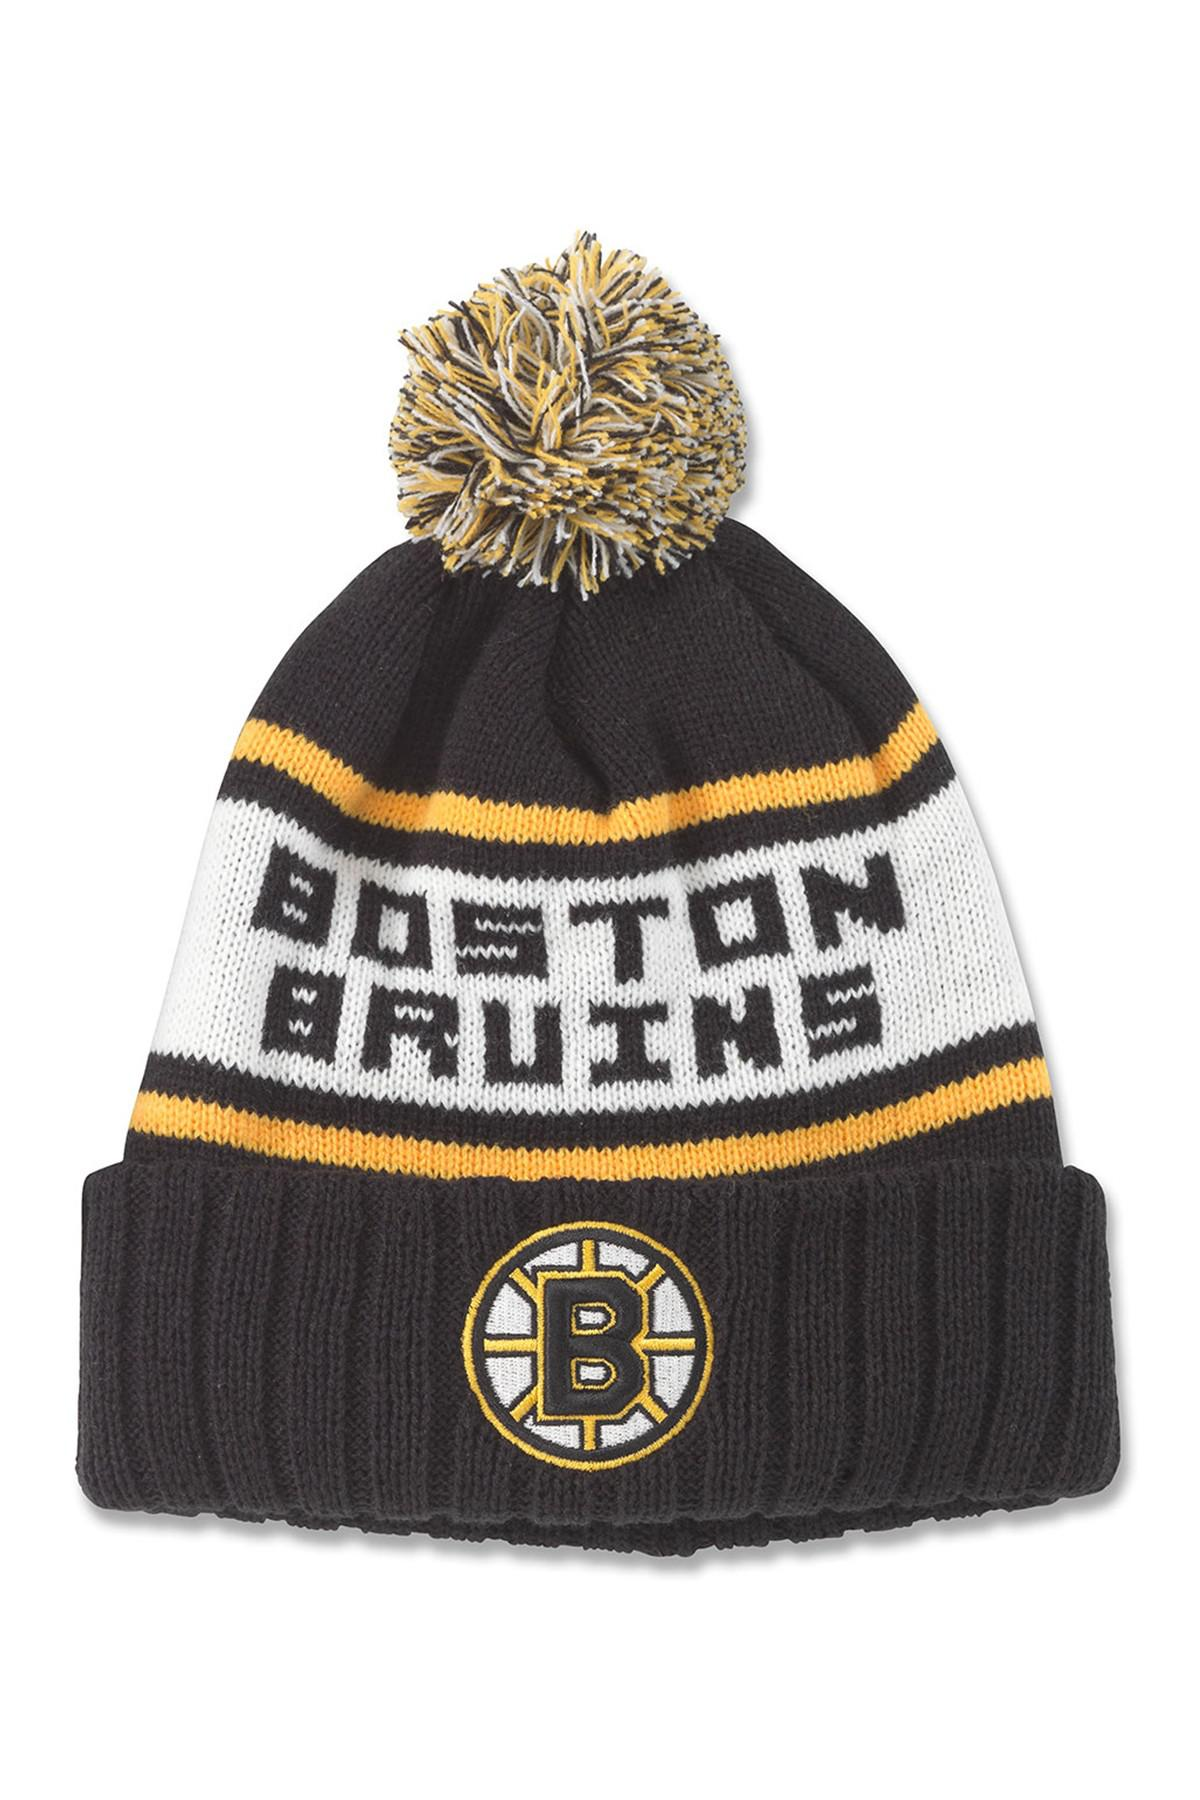 eacc74718ab5a9 Lyst - American Needle Nhl Boston Bruins Pillow Line Knit Beanie in ...